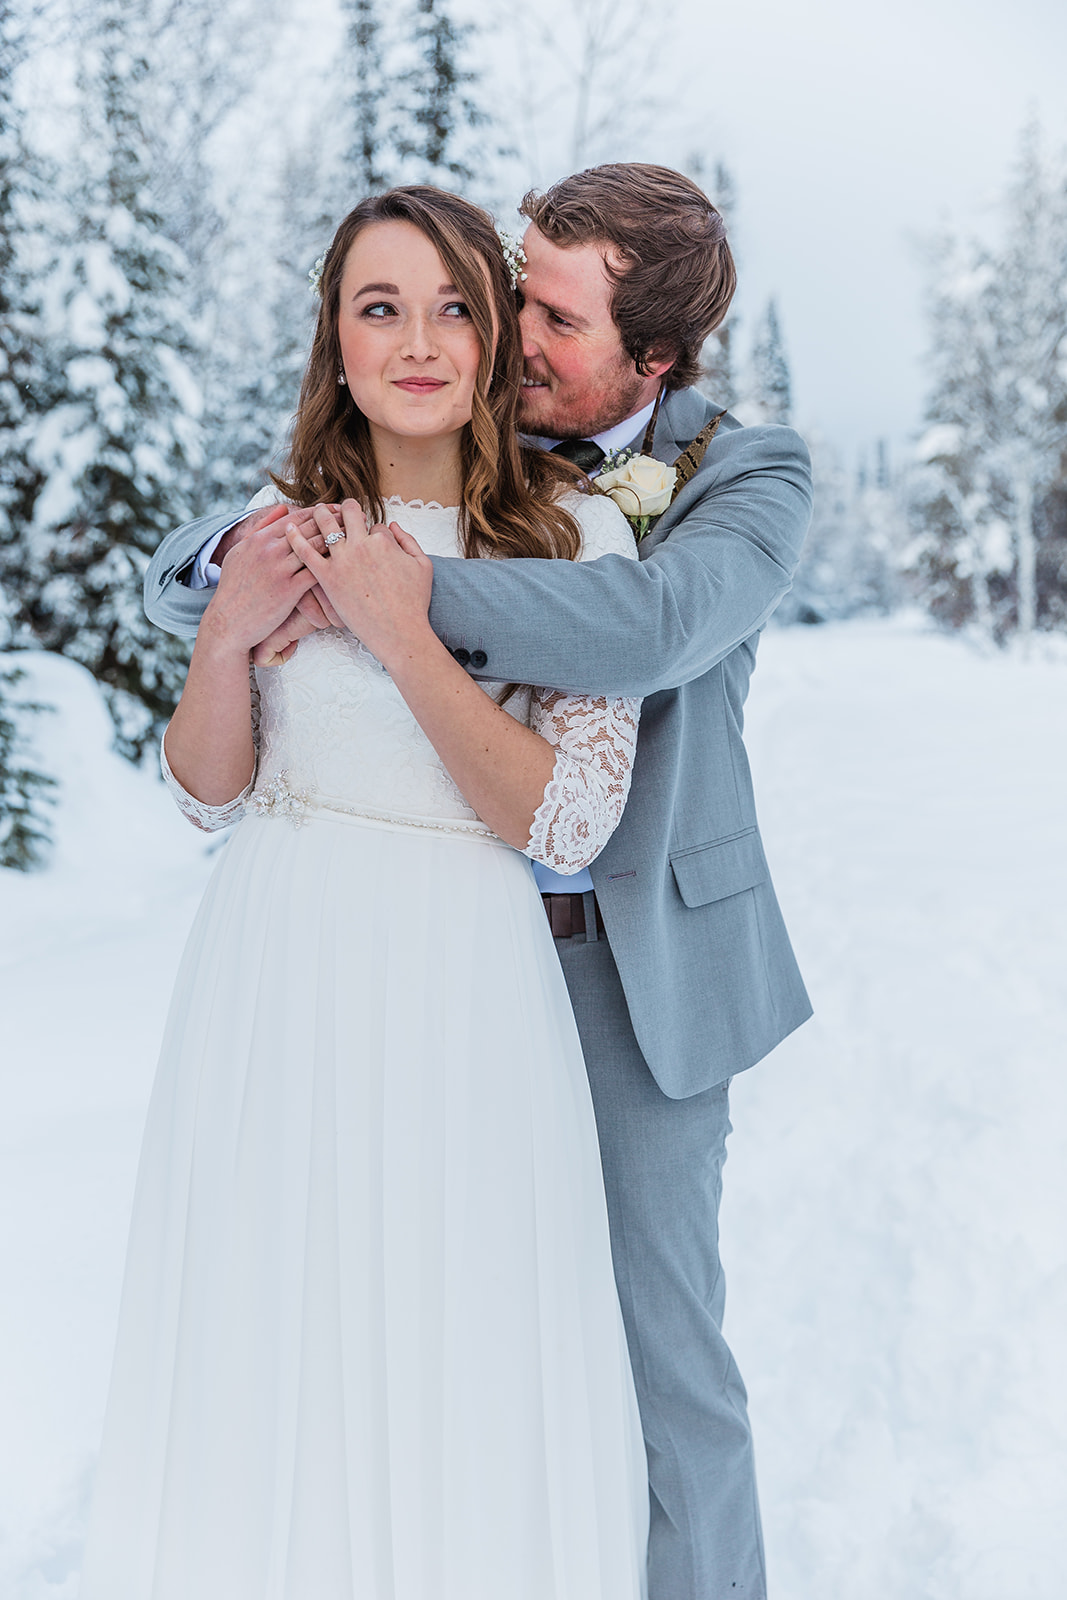 hugging the bride cheeky bridal picture love is in the air simple elegant wedding hair ideas inspiration for winter wedding pictures rosy cheeks in tony's grove cache valley loving couple couple goals winter wonderland love in the snow #winterwedding #formals #tony'sgrove #cachevalley #snowcoveredtrees #bellaalderphotography #professionalphotographer #winterwonderland #couplegoals #weddingattire